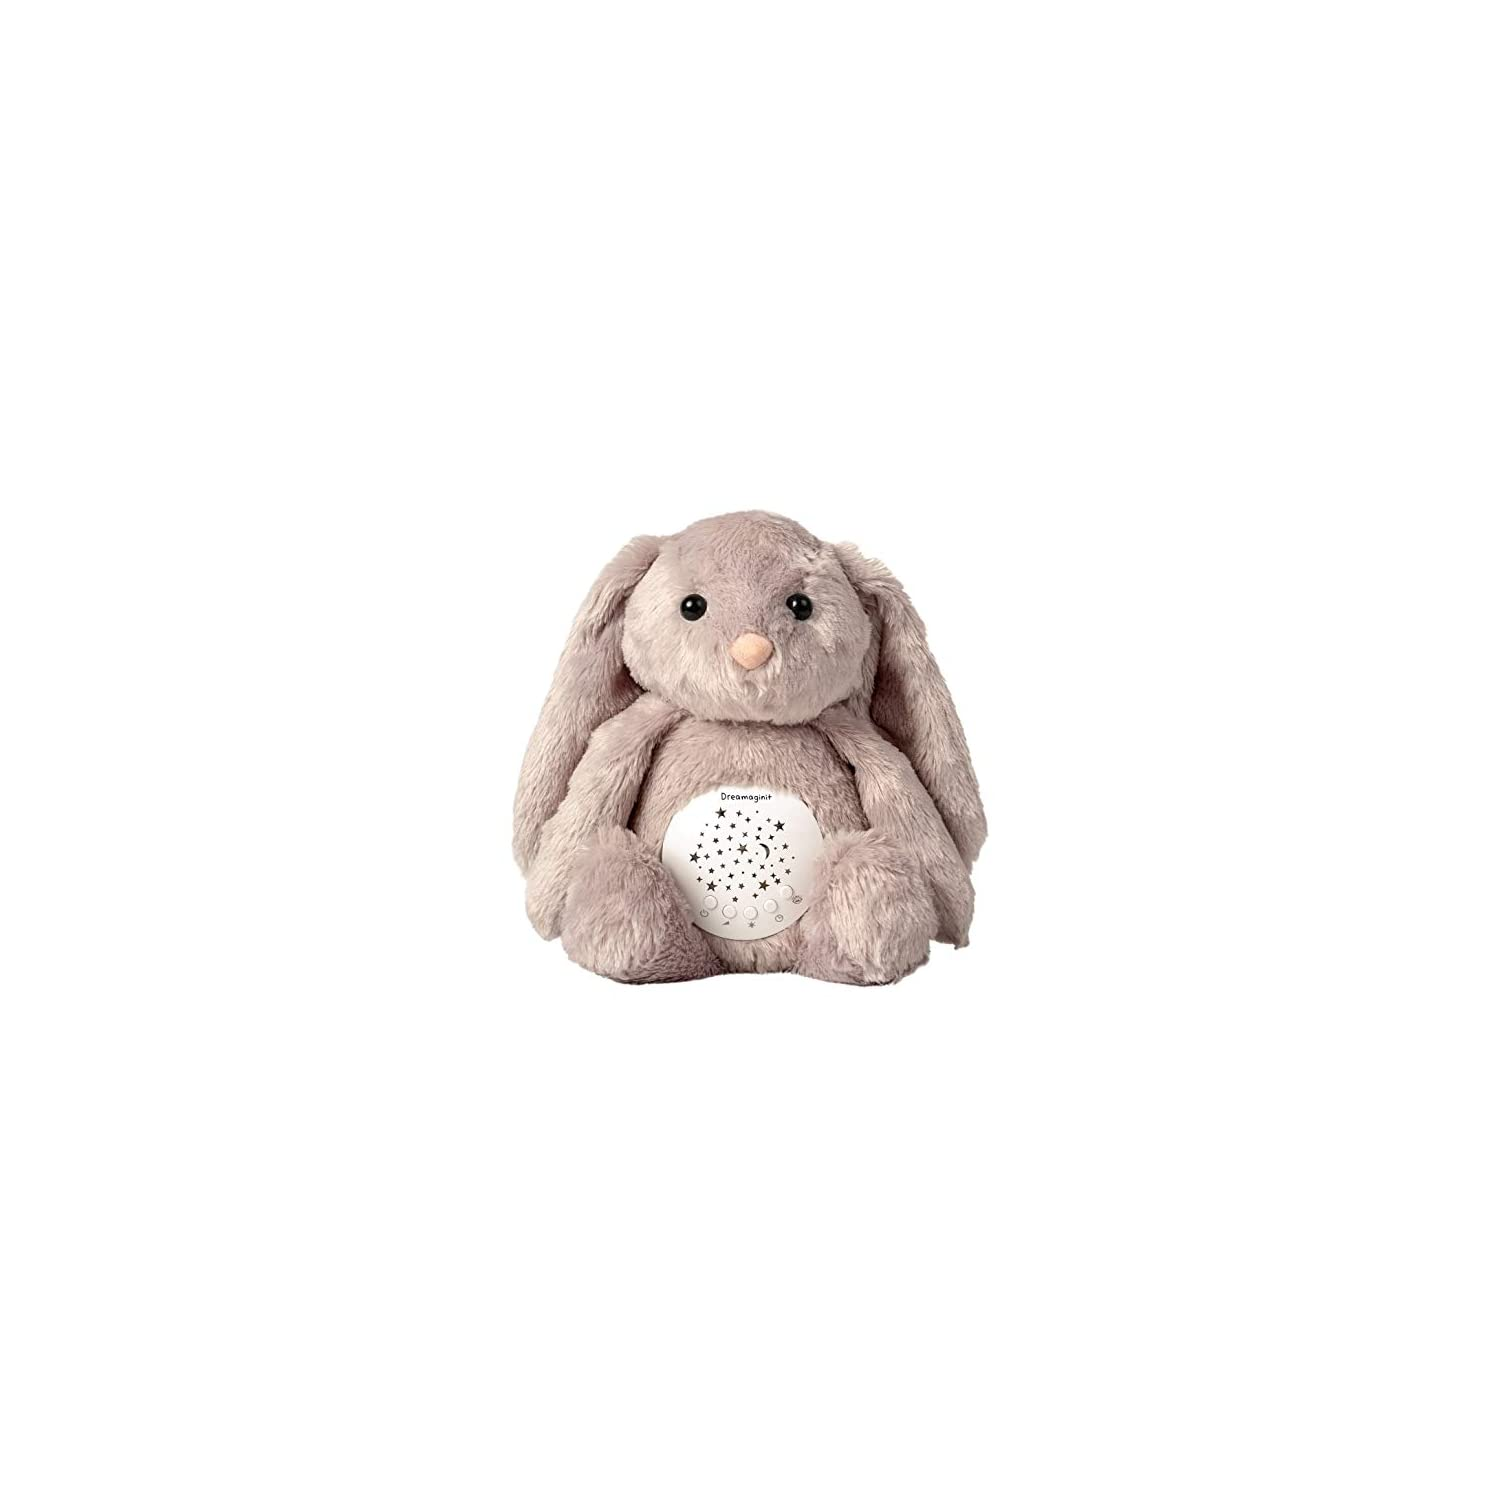 Dreamaginit Baby White Noise Machine, Lullabies & Shusher Sound Soother, Nursery Decor Night Light Projector, Toddler Crib Sleep Aid, Baby Gifts Portable Bunny Plush Stuffed Animal